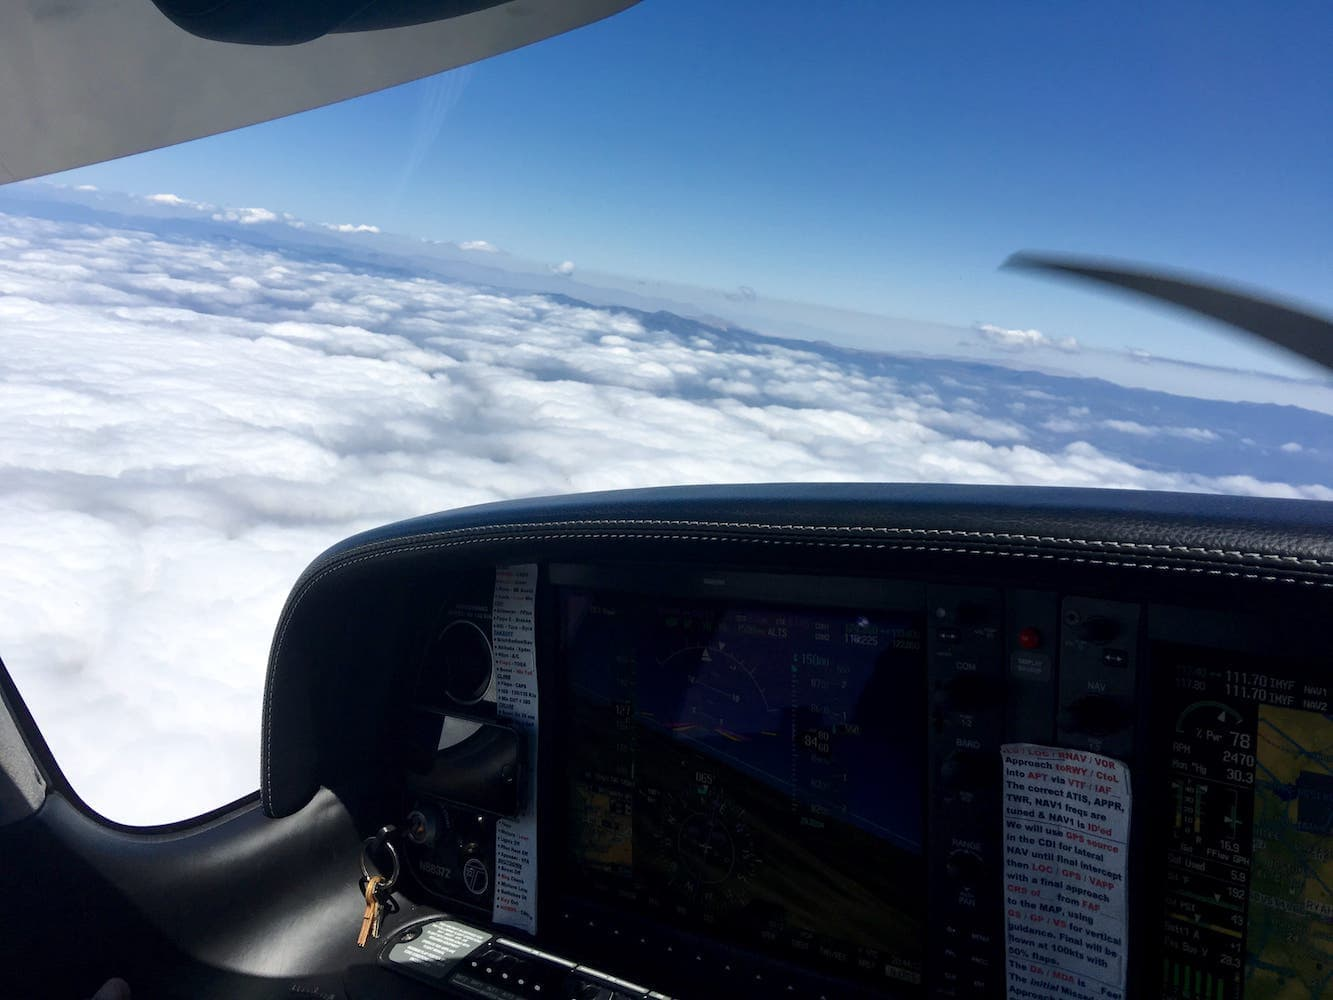 B4 – Well above the clouds